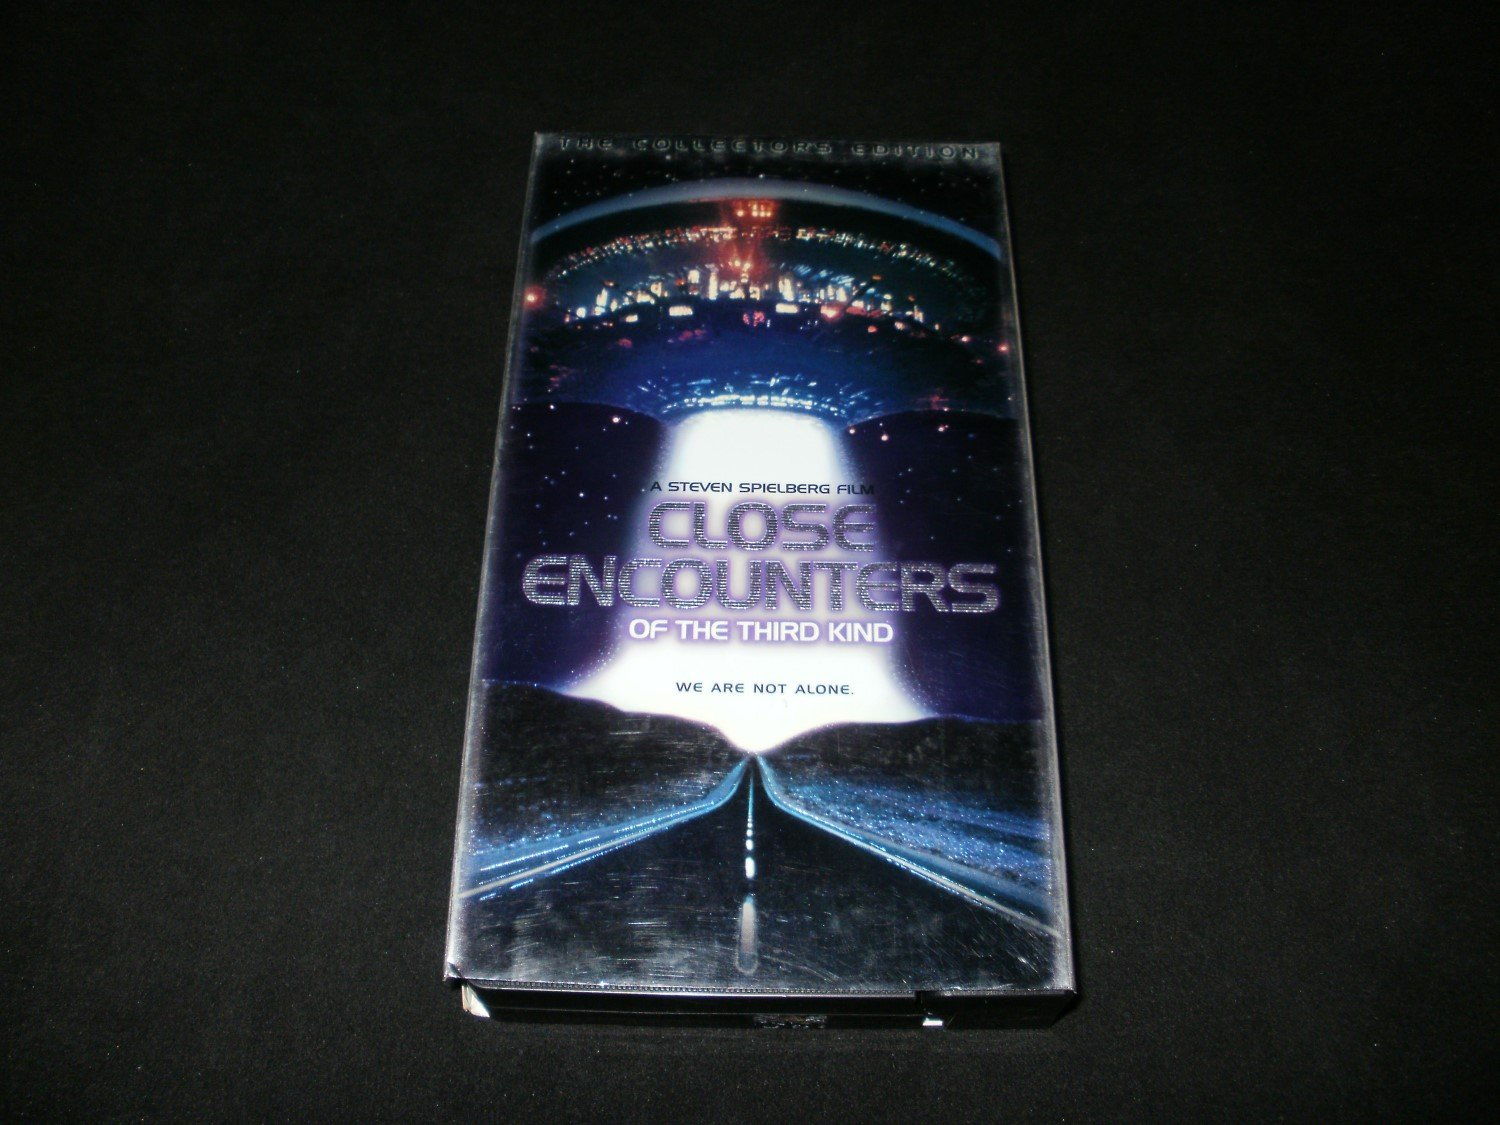 Close Encounters of the Third Kind - 1998 VHS Movie - Collector's Edition